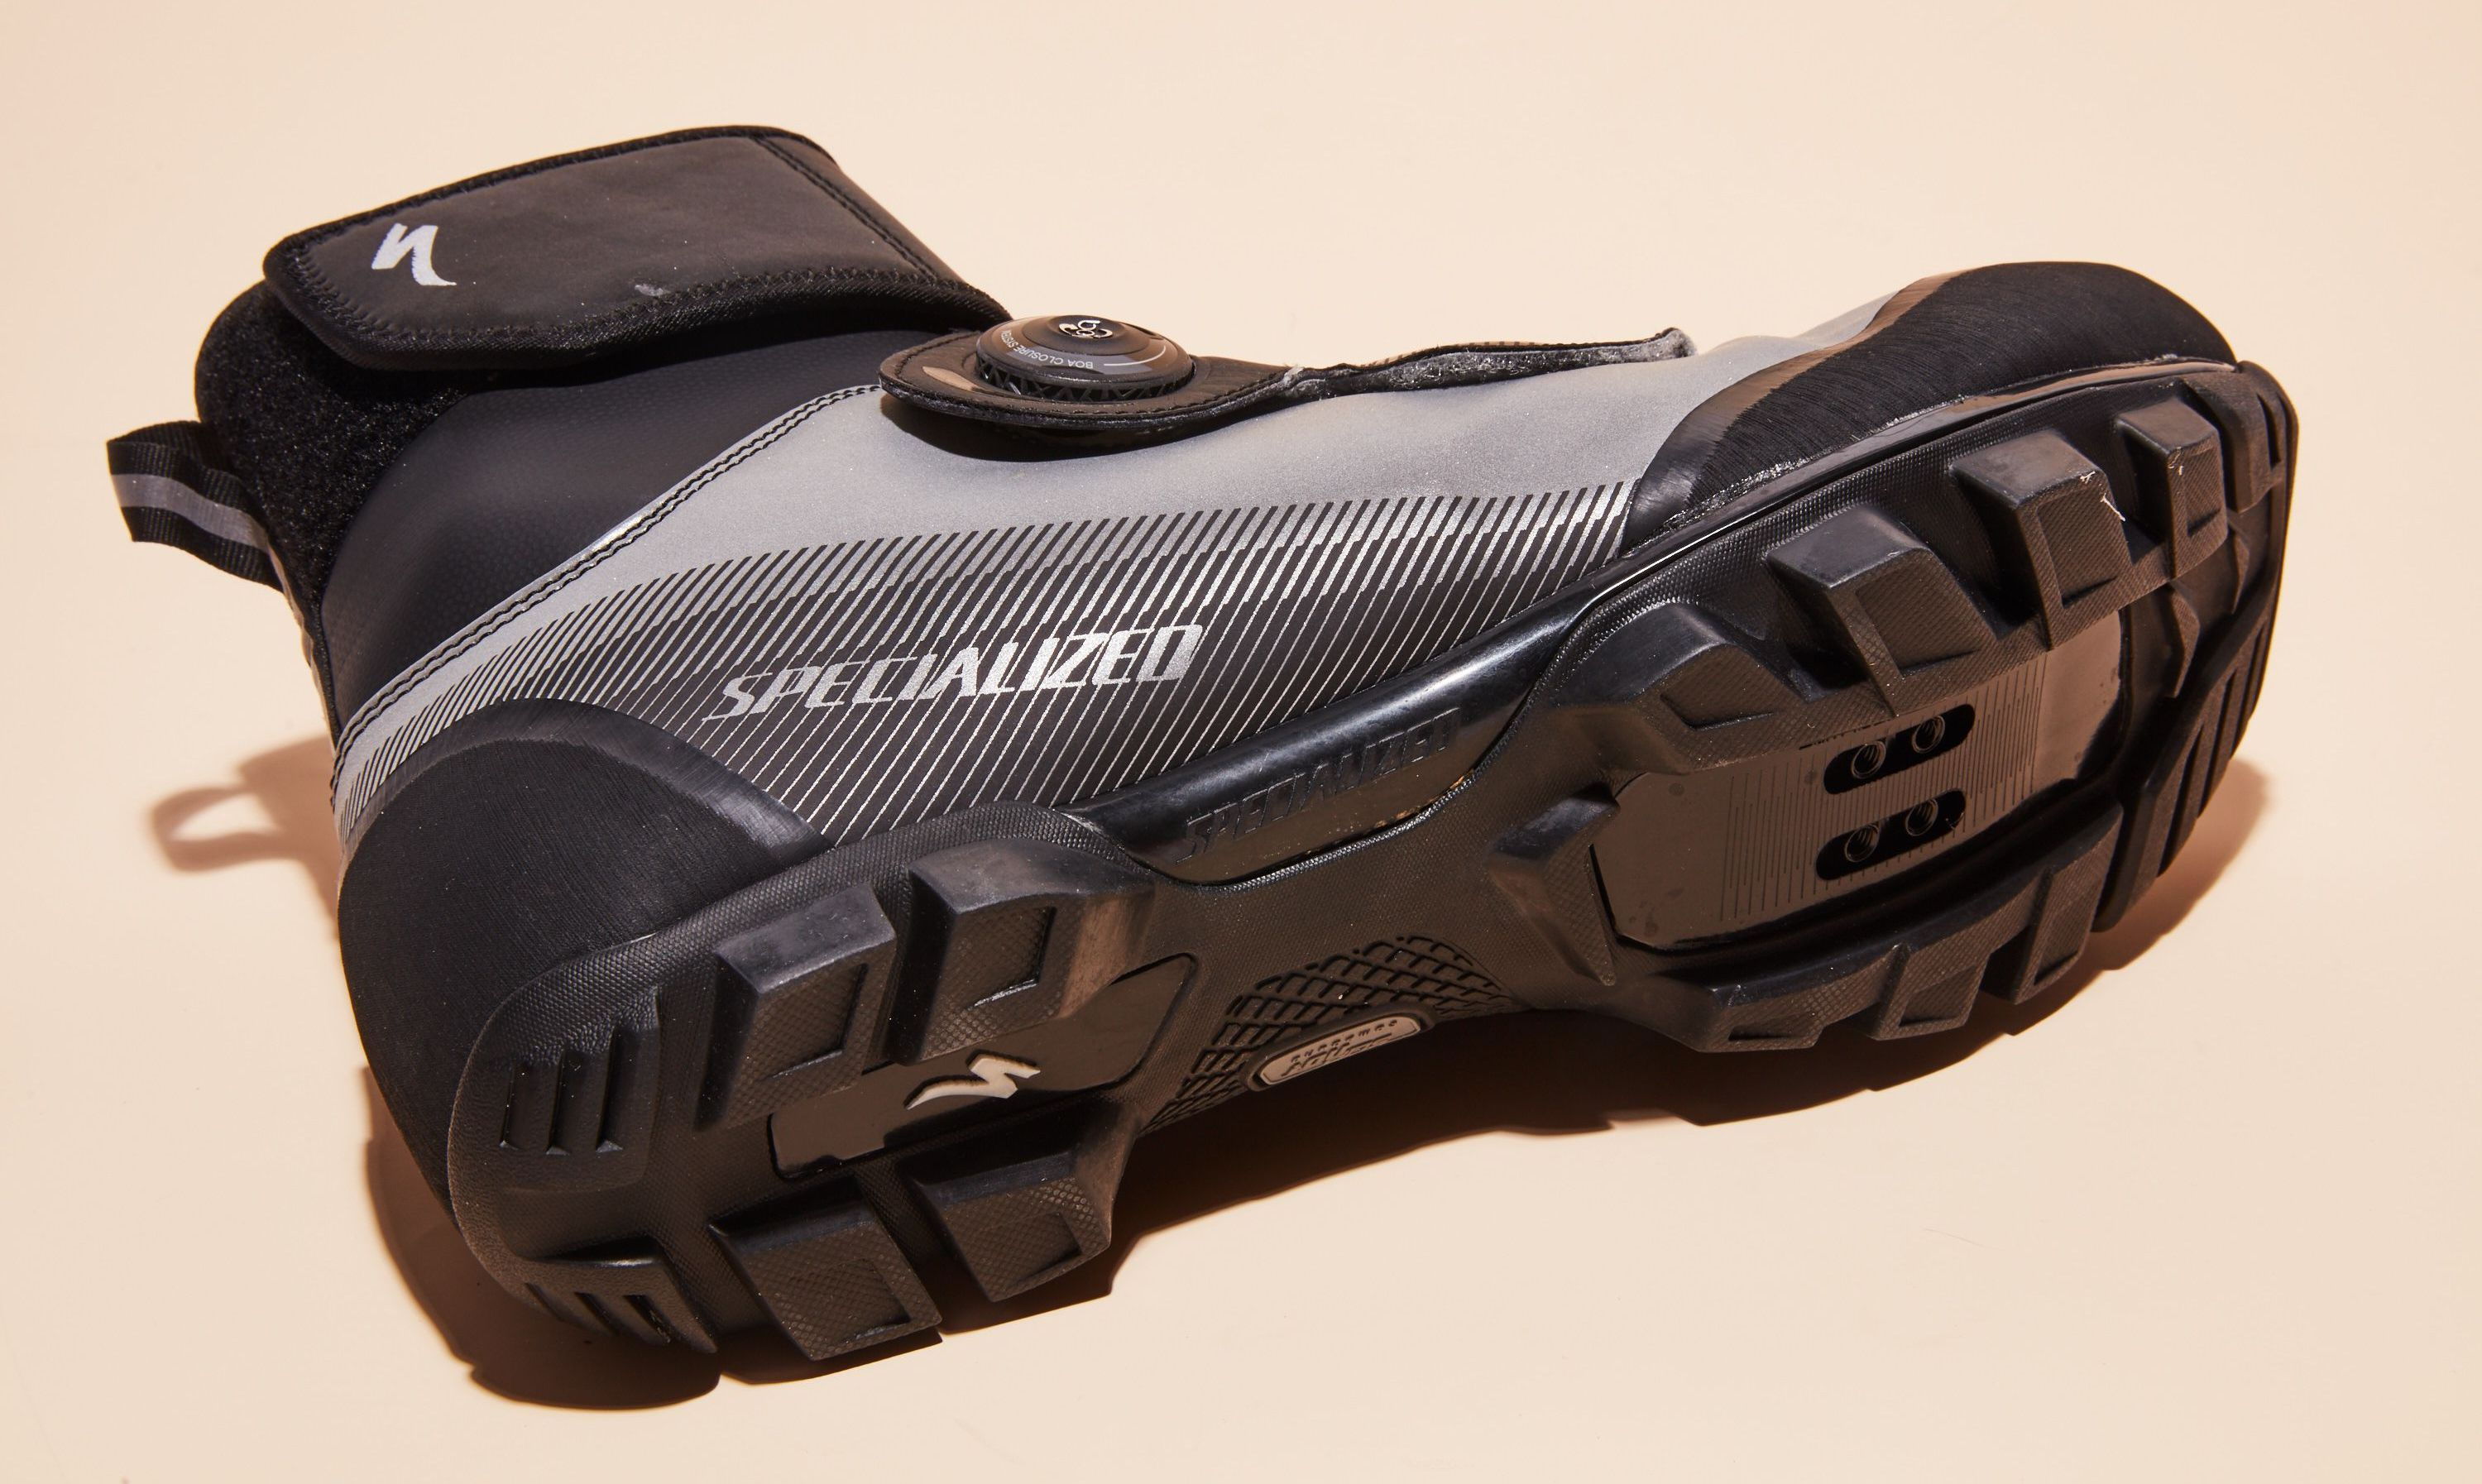 Specialized's Defroster Trail Mountain Bike Shoes Will Keep Your Feet Toasty All Winter Long